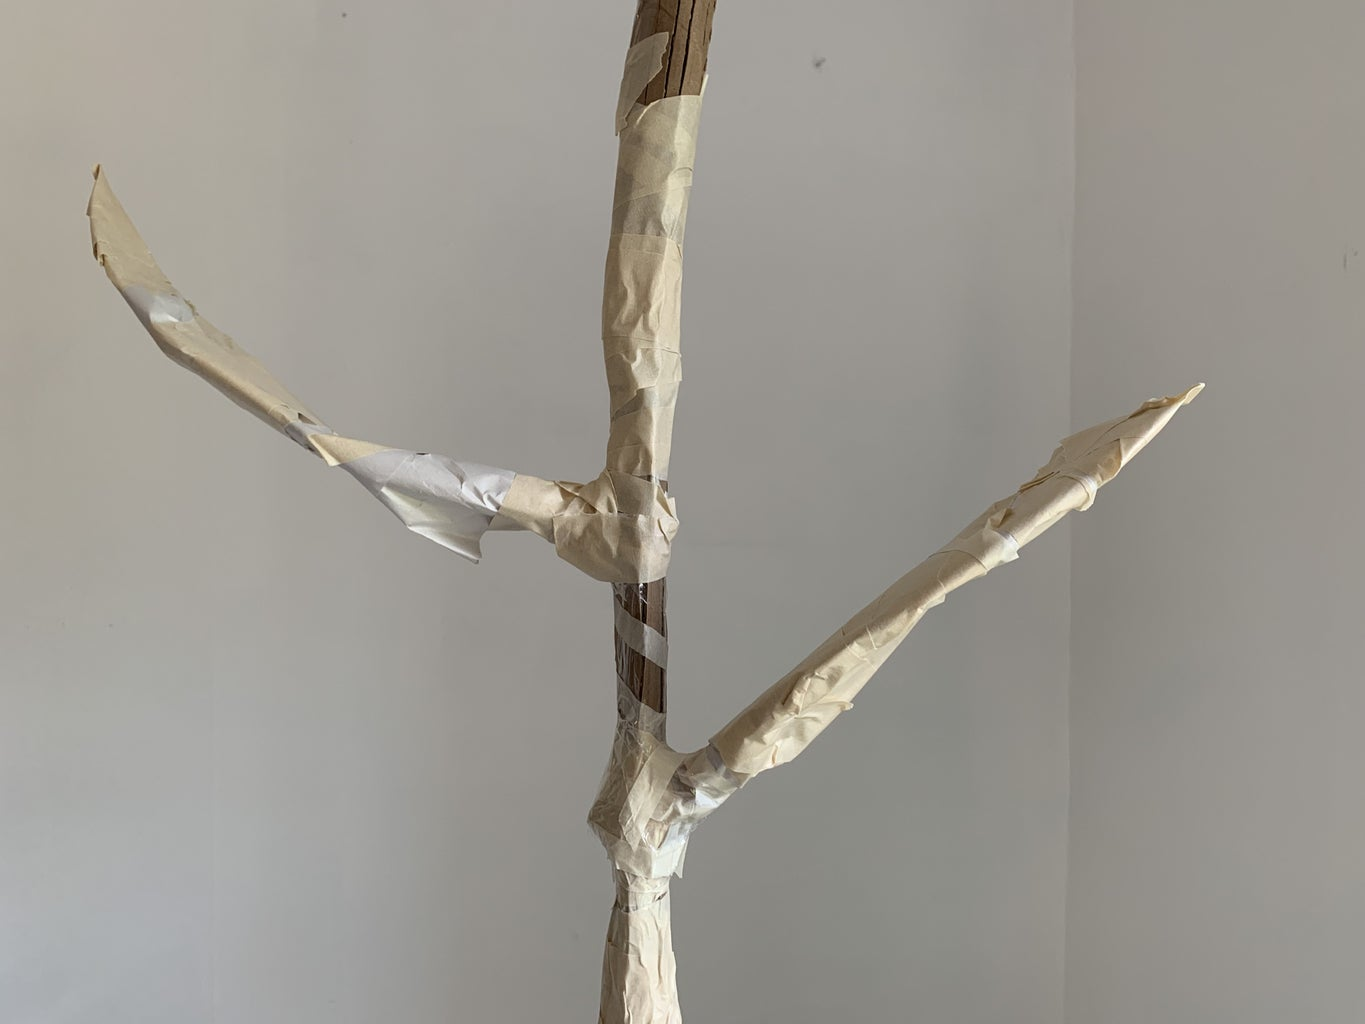 Add Leaves to Your Armature